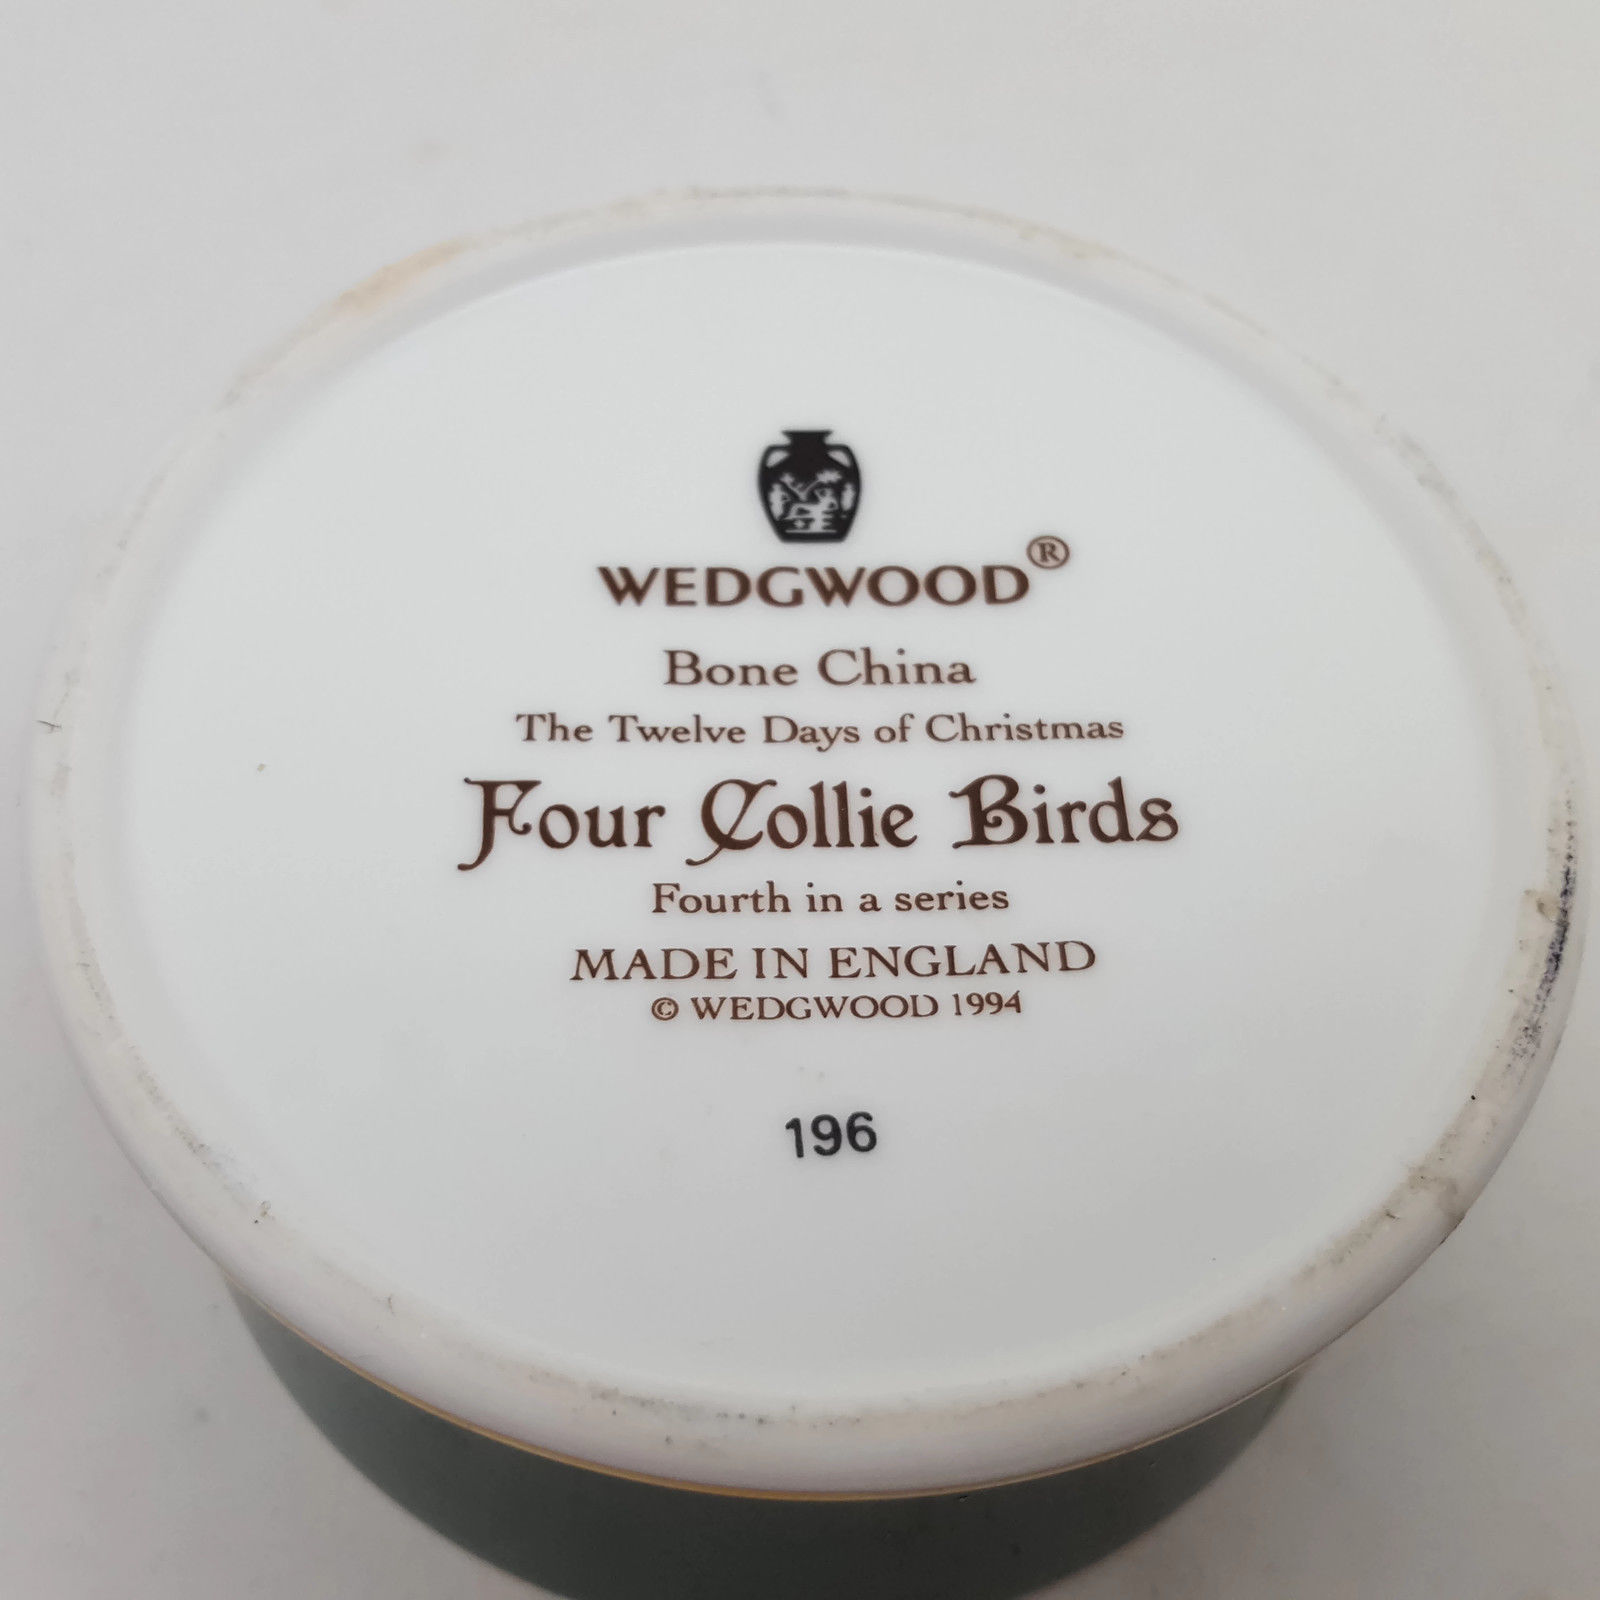 Wedgwood 4 Collie Birds Twelve Days Of Christmas Bone China Trinket Box image 4